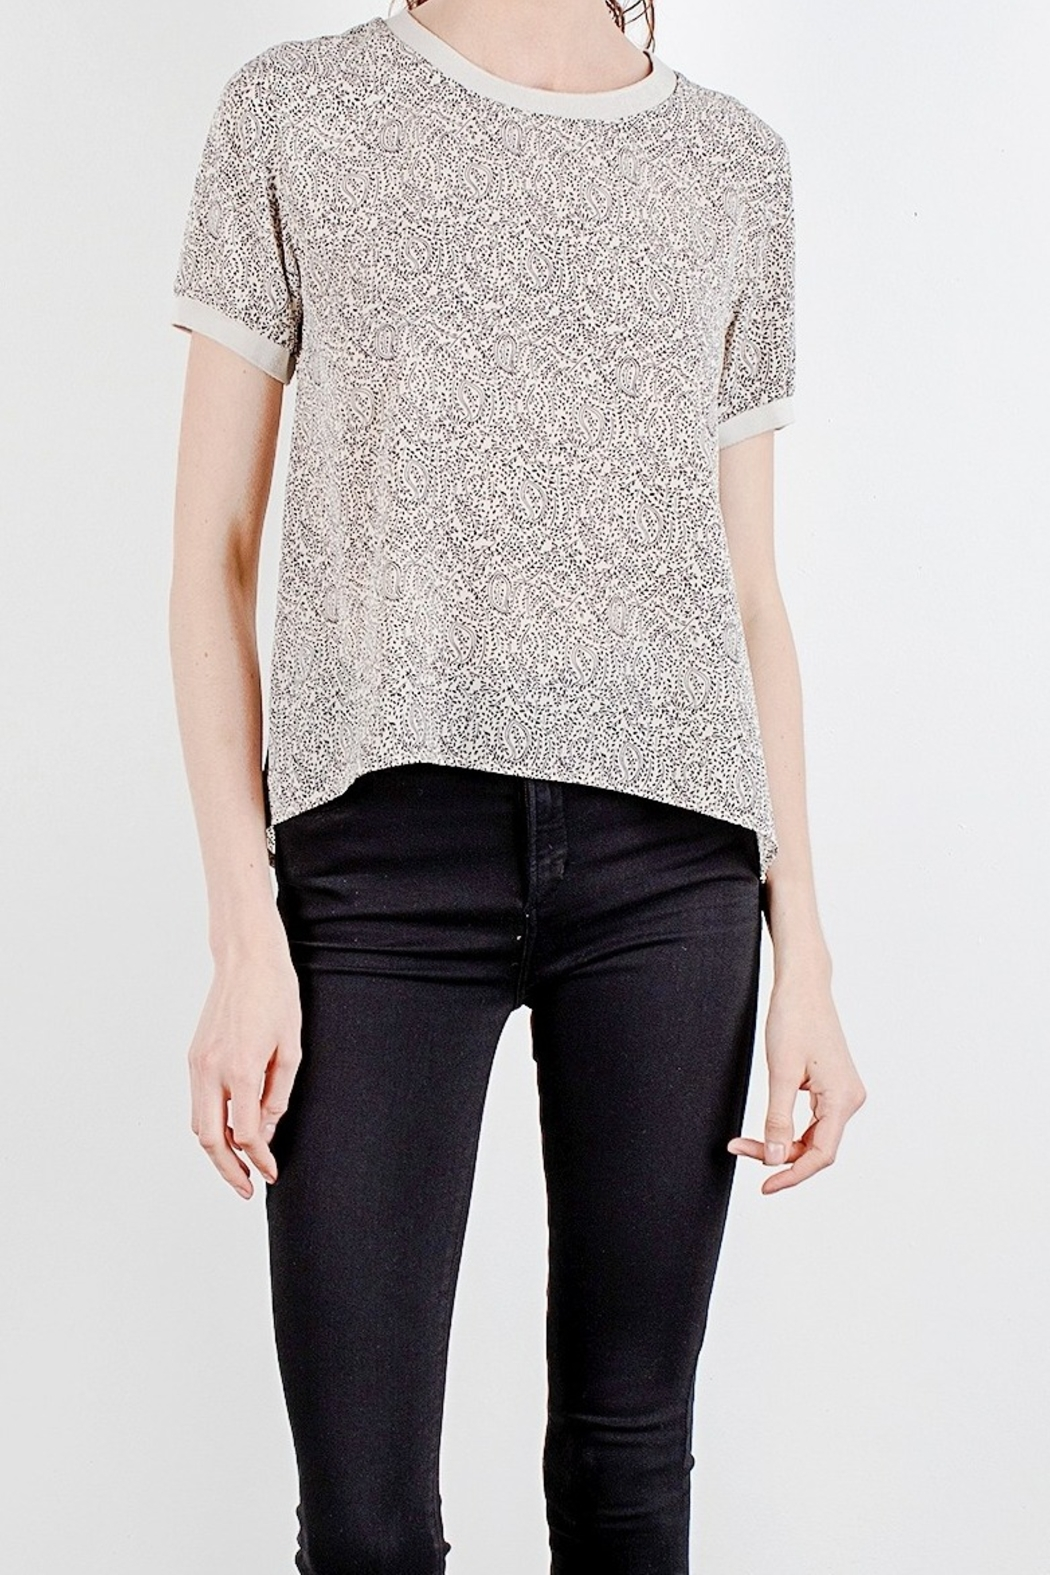 Mod Ref Paisley printed short sleeve top - Main Image